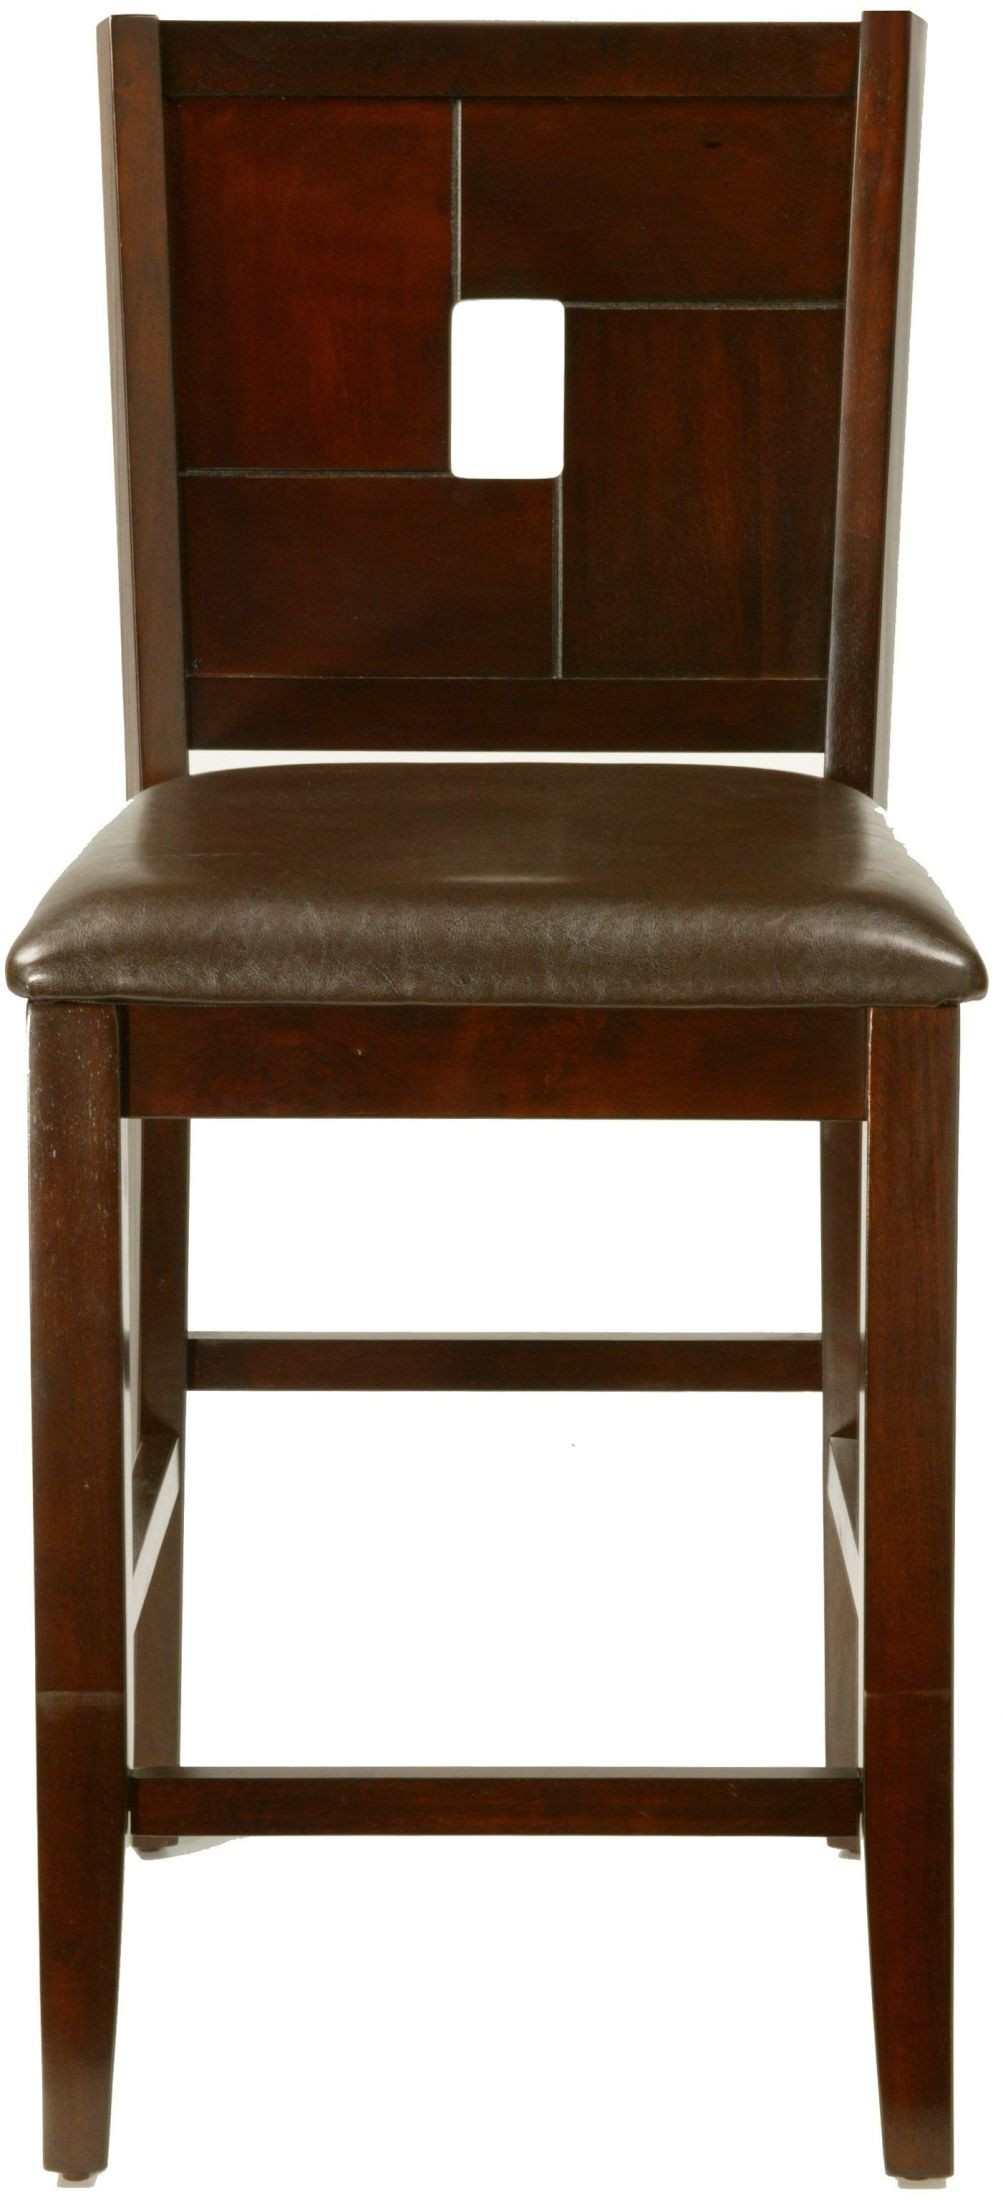 Lakeport Espresso Counter Height Pub Chair Set of 2 552  : 552 022alpine1 from colemanfurniture.com size 1003 x 2200 jpeg 202kB